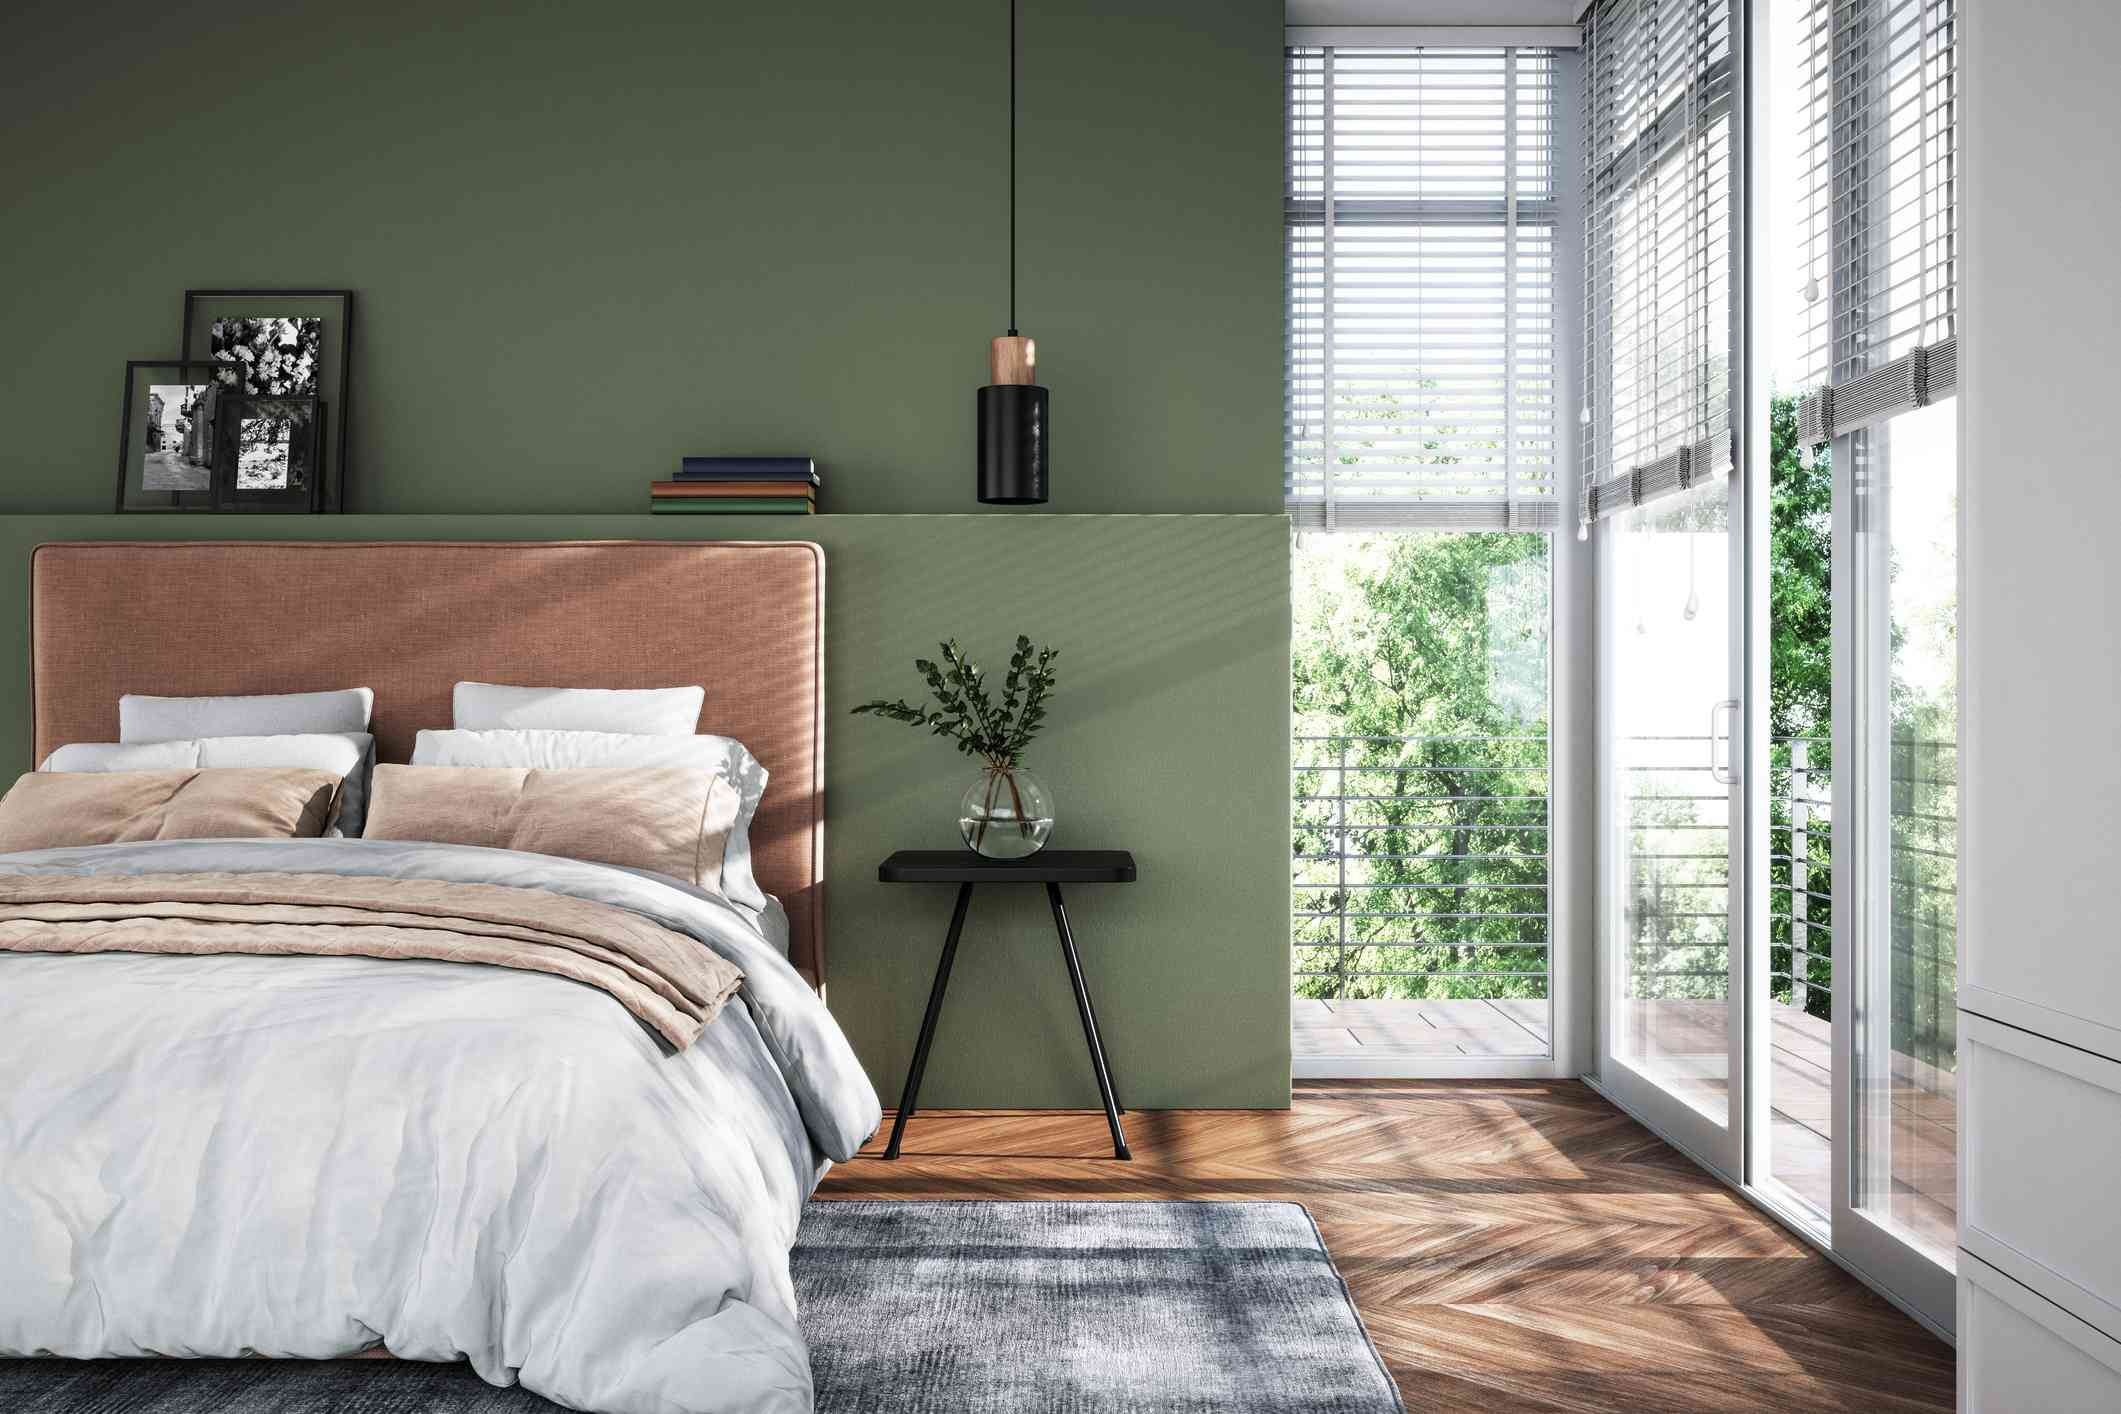 modern bedroom with green walls and brown accents, natural light